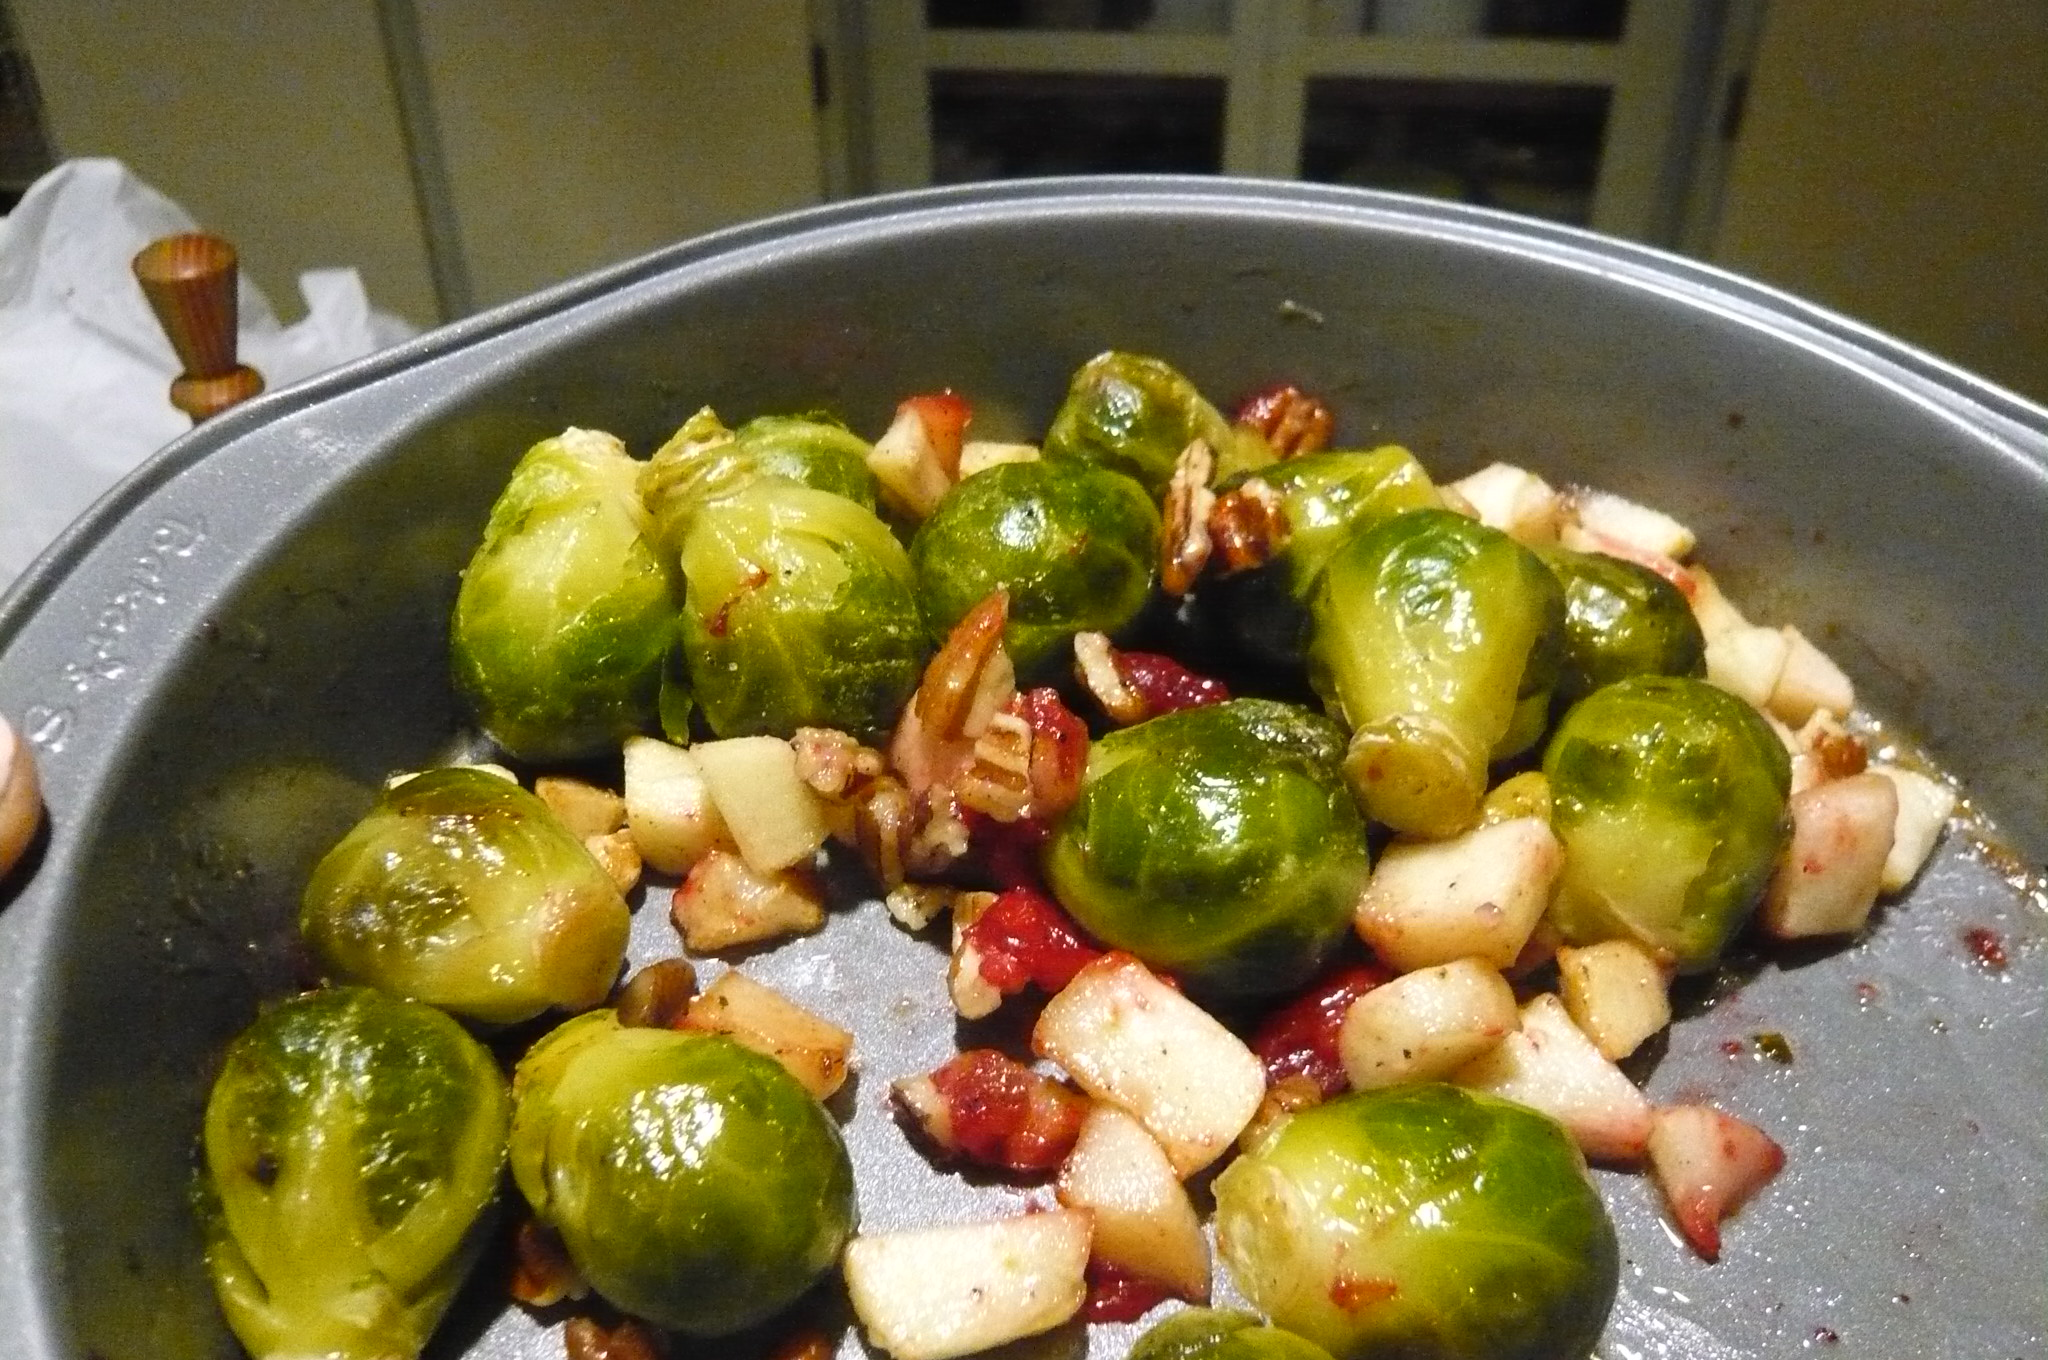 Maple-Roasted Brussels Sprouts with Apples and Cranberries Jan Mowbray